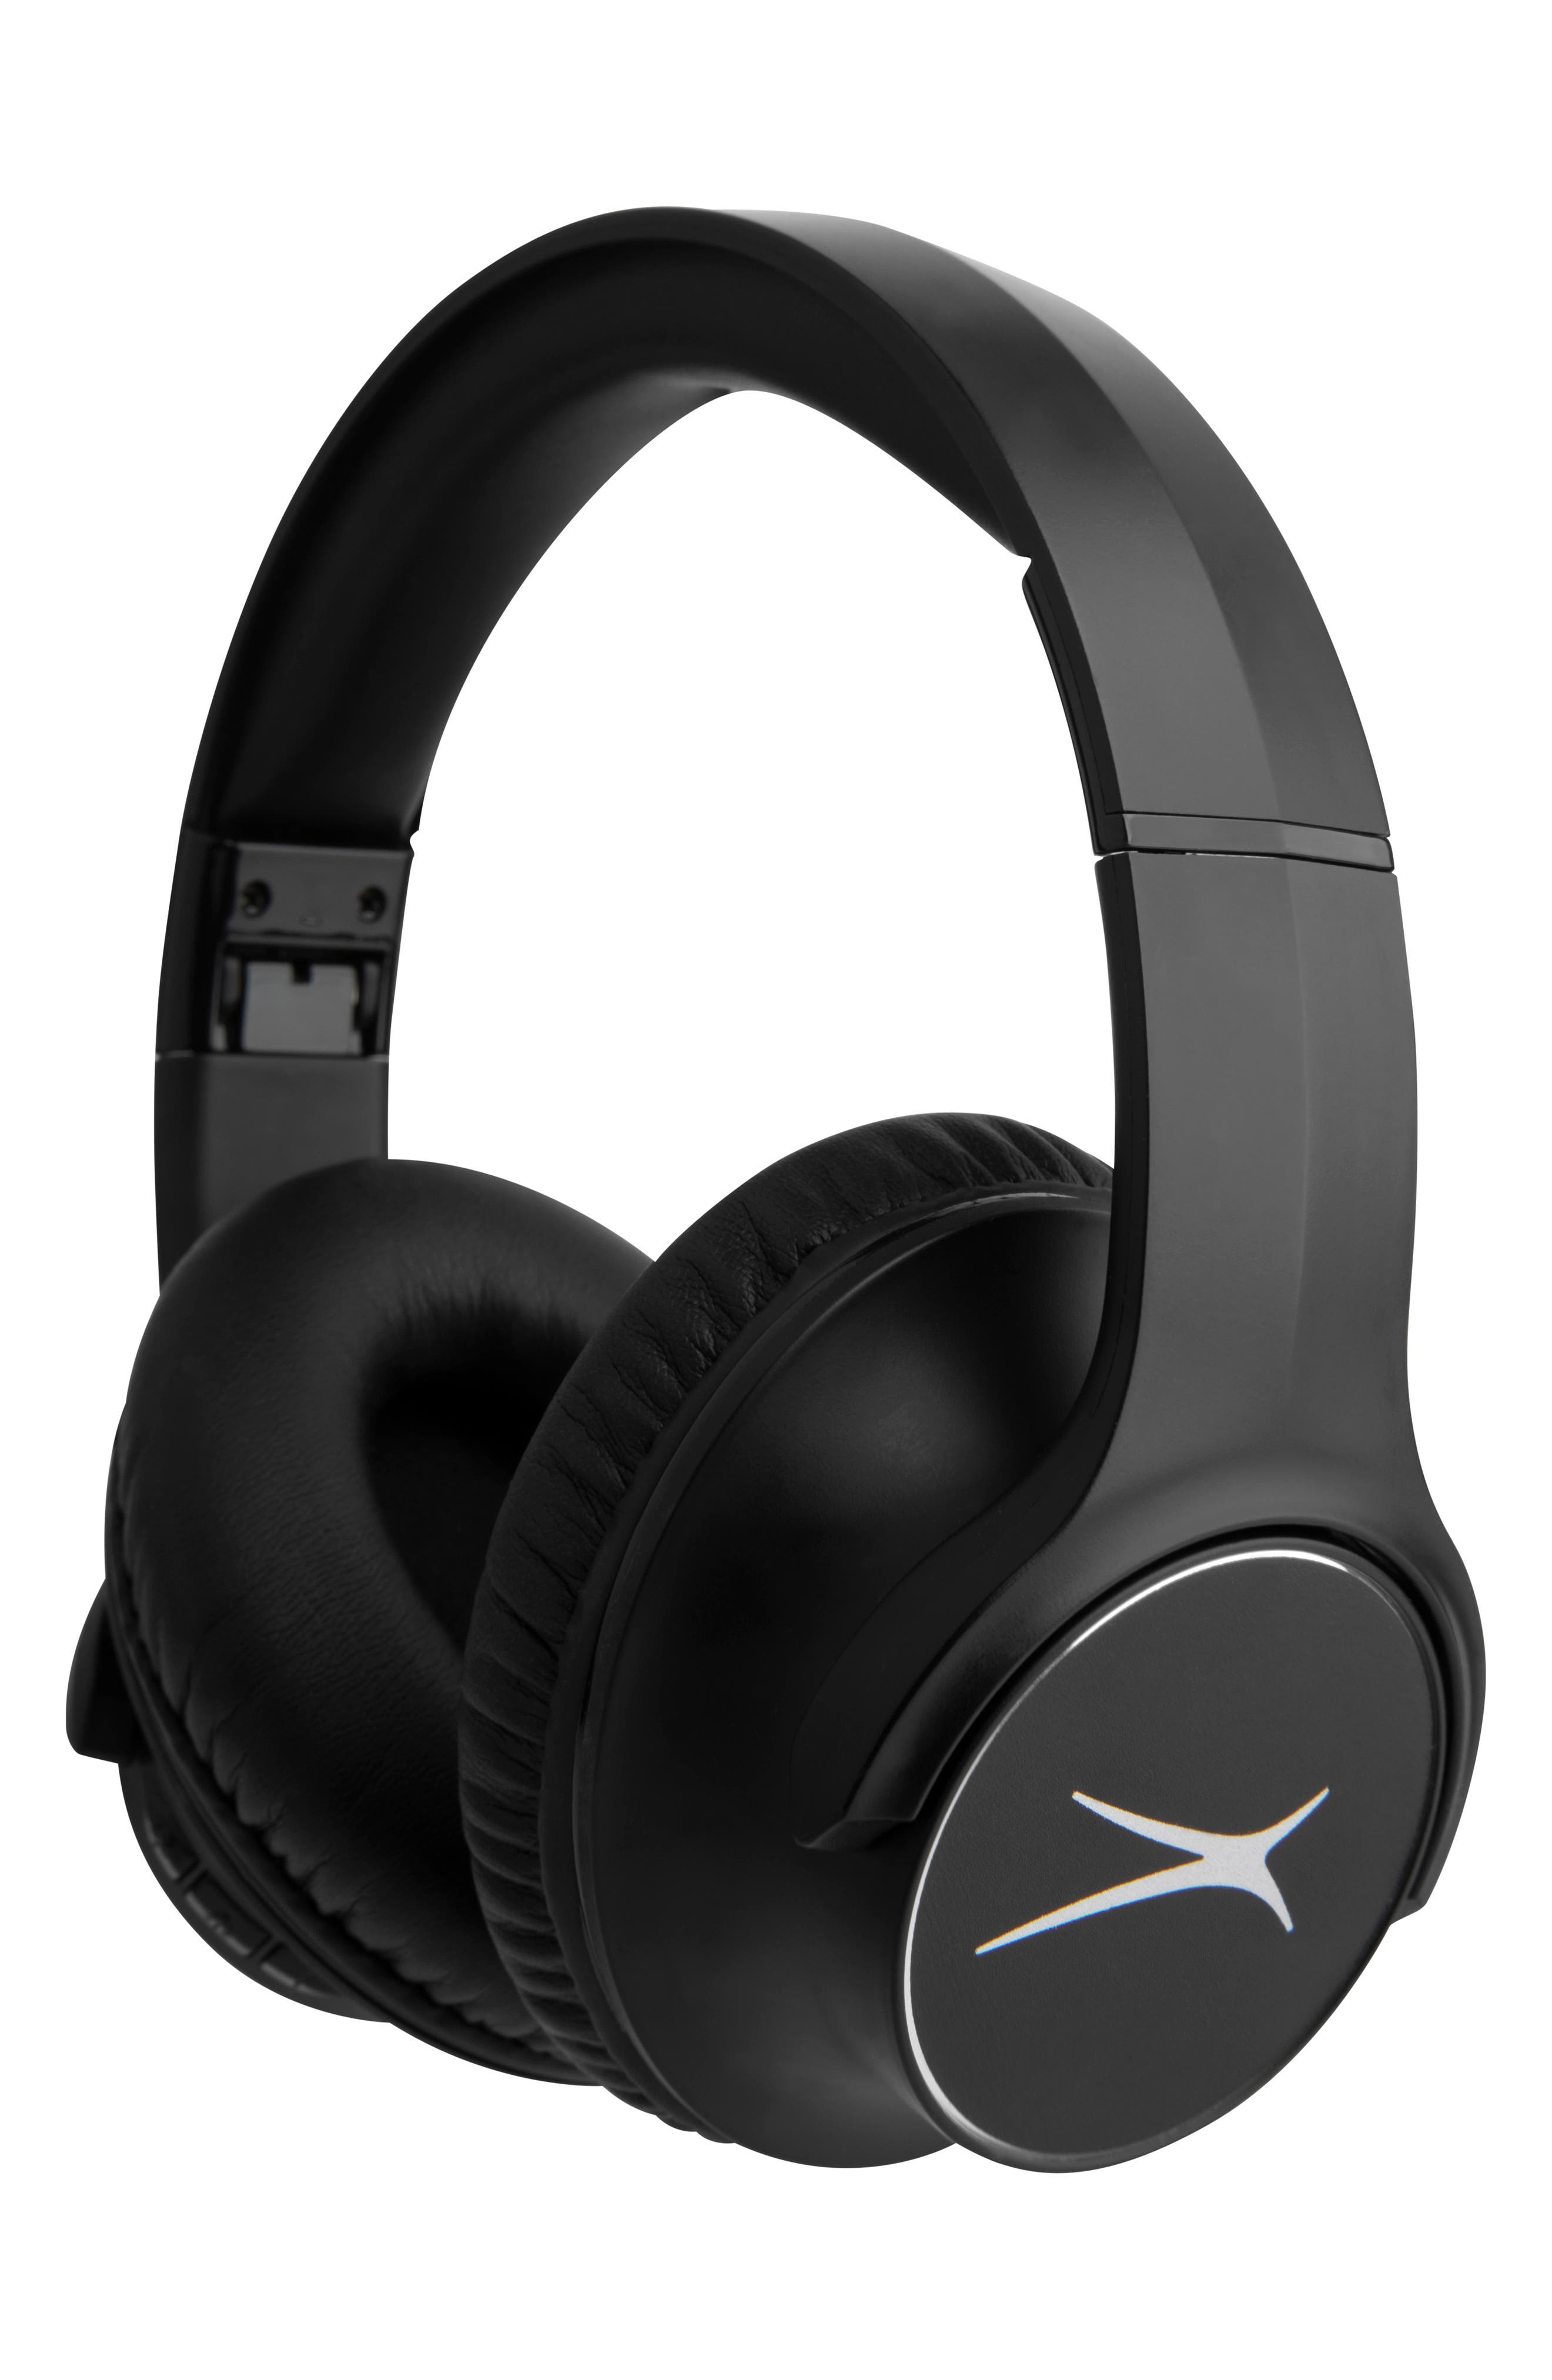 With booming bass that immerses you in impressive sound, these headphones will bring your music to a brand-new level. The comfort ear cushions and a lightweight, folding design make them the perfect travel companion. Headphone style: Over-ear with memory foam cups for all-day listening. Includes: Headphones, AUX cable and USB charging cable. Wireless connectivity: Compatible with any Bluetooth device. System compatibility: Access Siri and Google